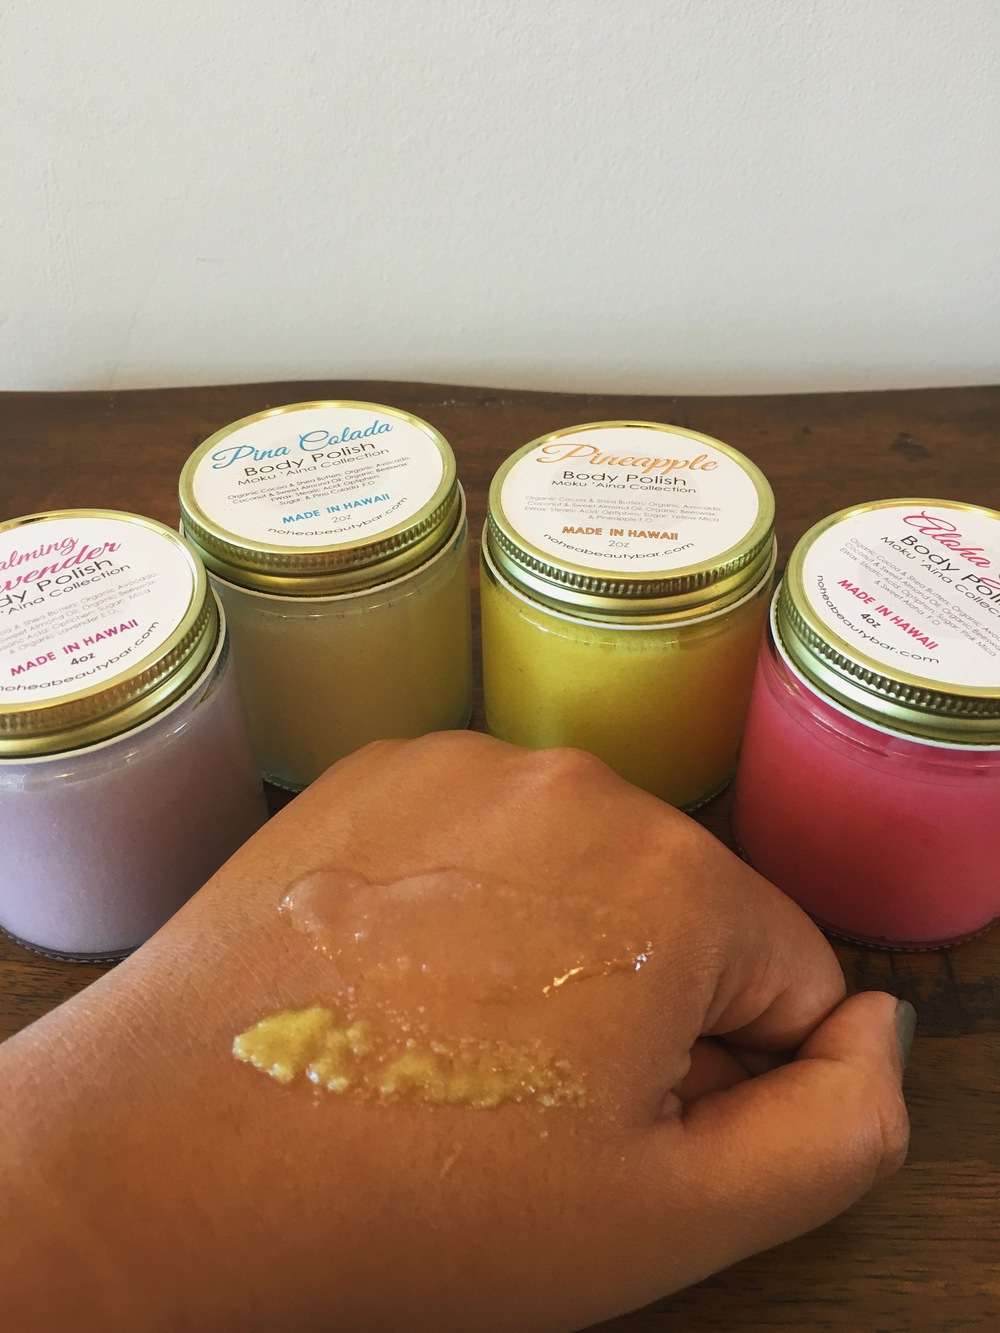 The body polish (sugar scrubs) are amazing. Since it's sugar instead of your typical salt scrub, its more gentle on your body. You can even use it on your face.